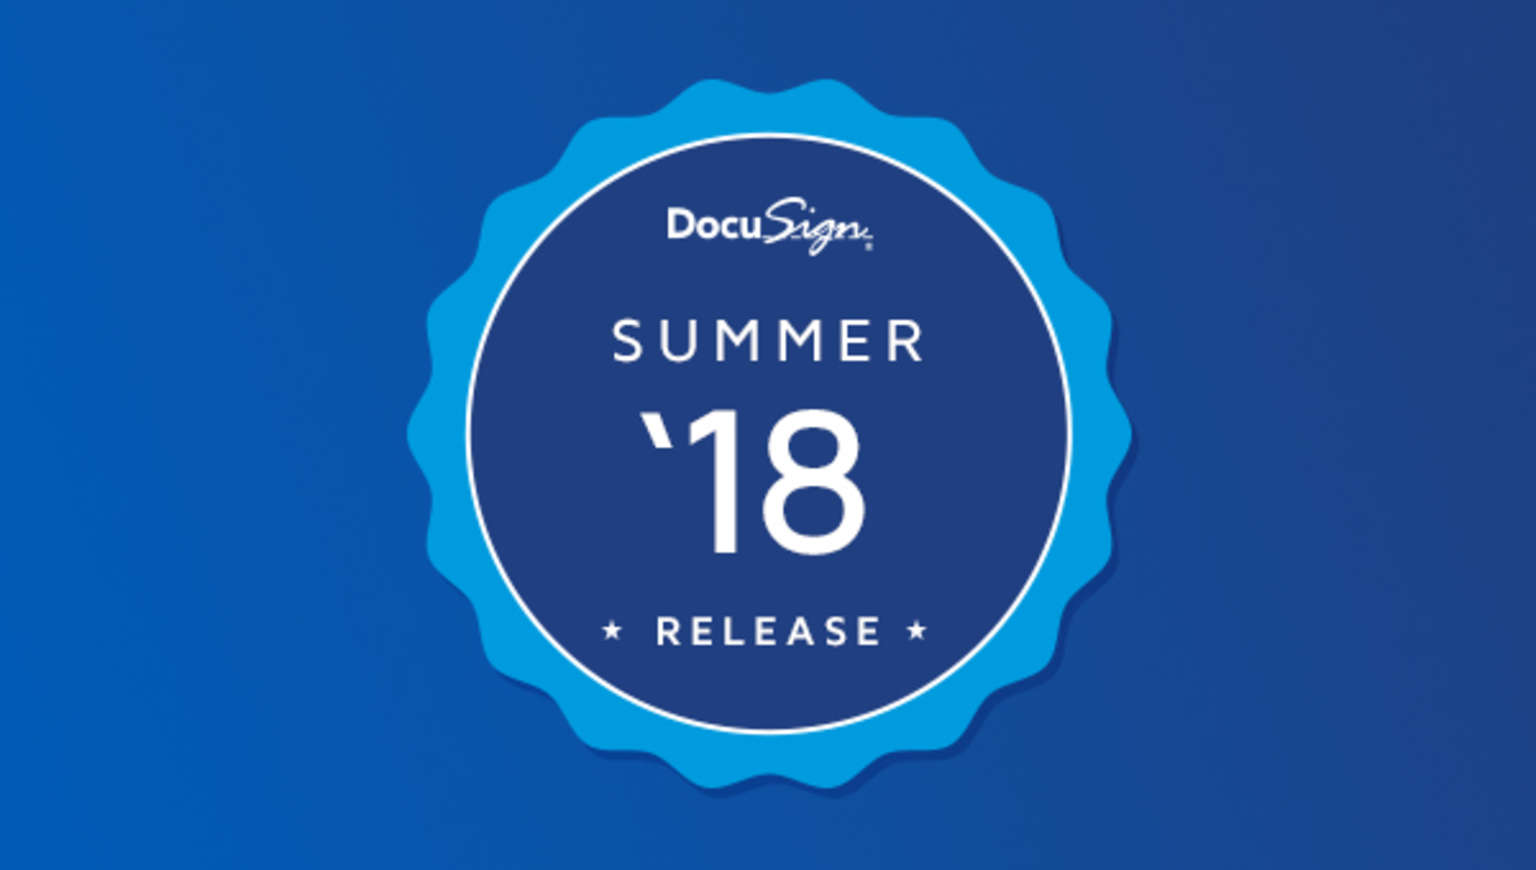 DocuSign's Summer 18 Release contains many new features